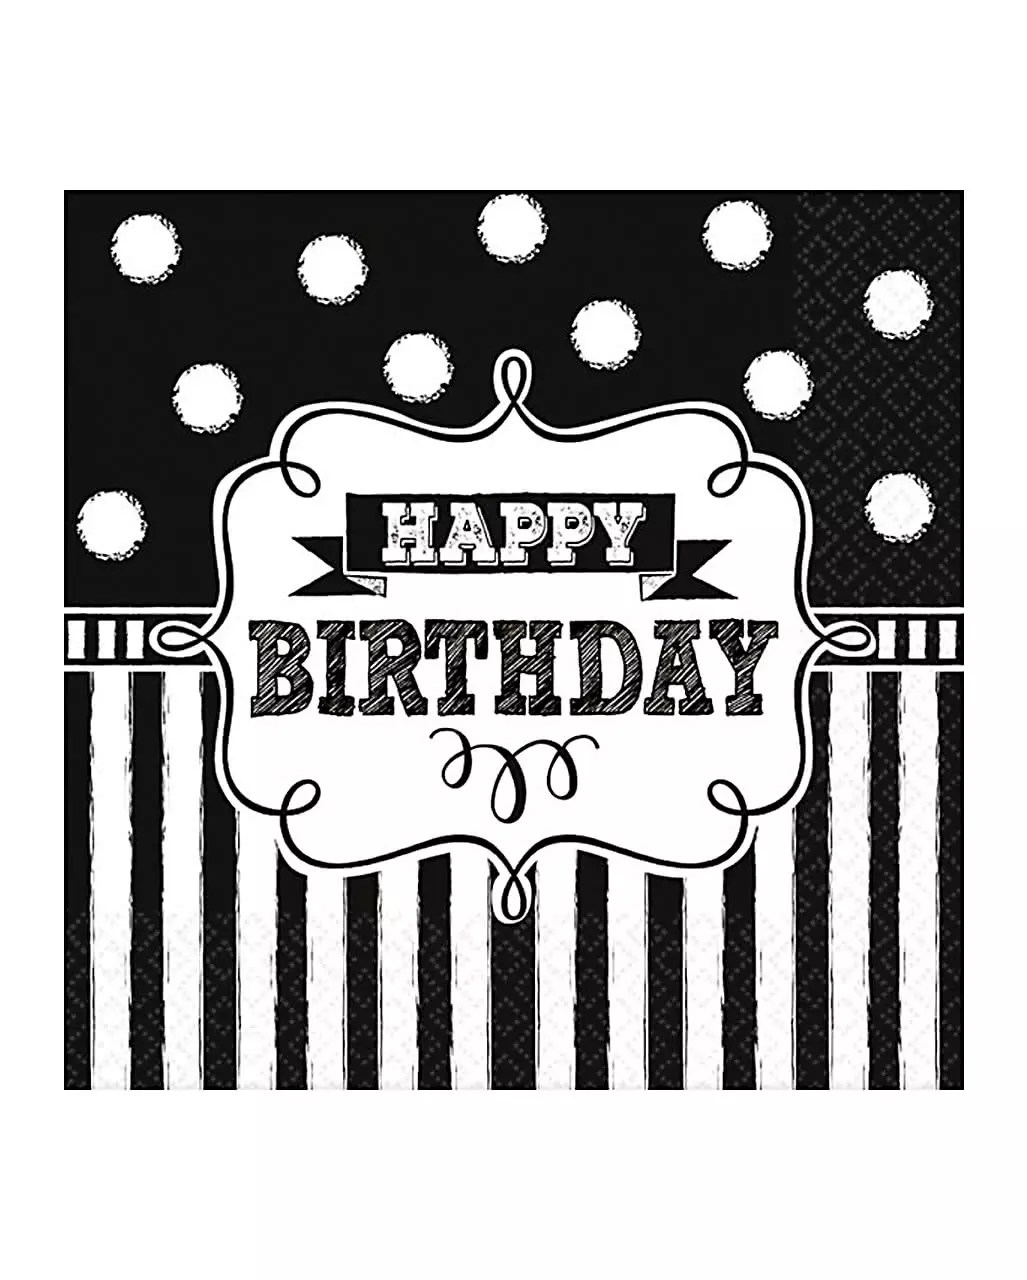 Schwarze Servietten Happy Birthday Servietten Black White 16 St